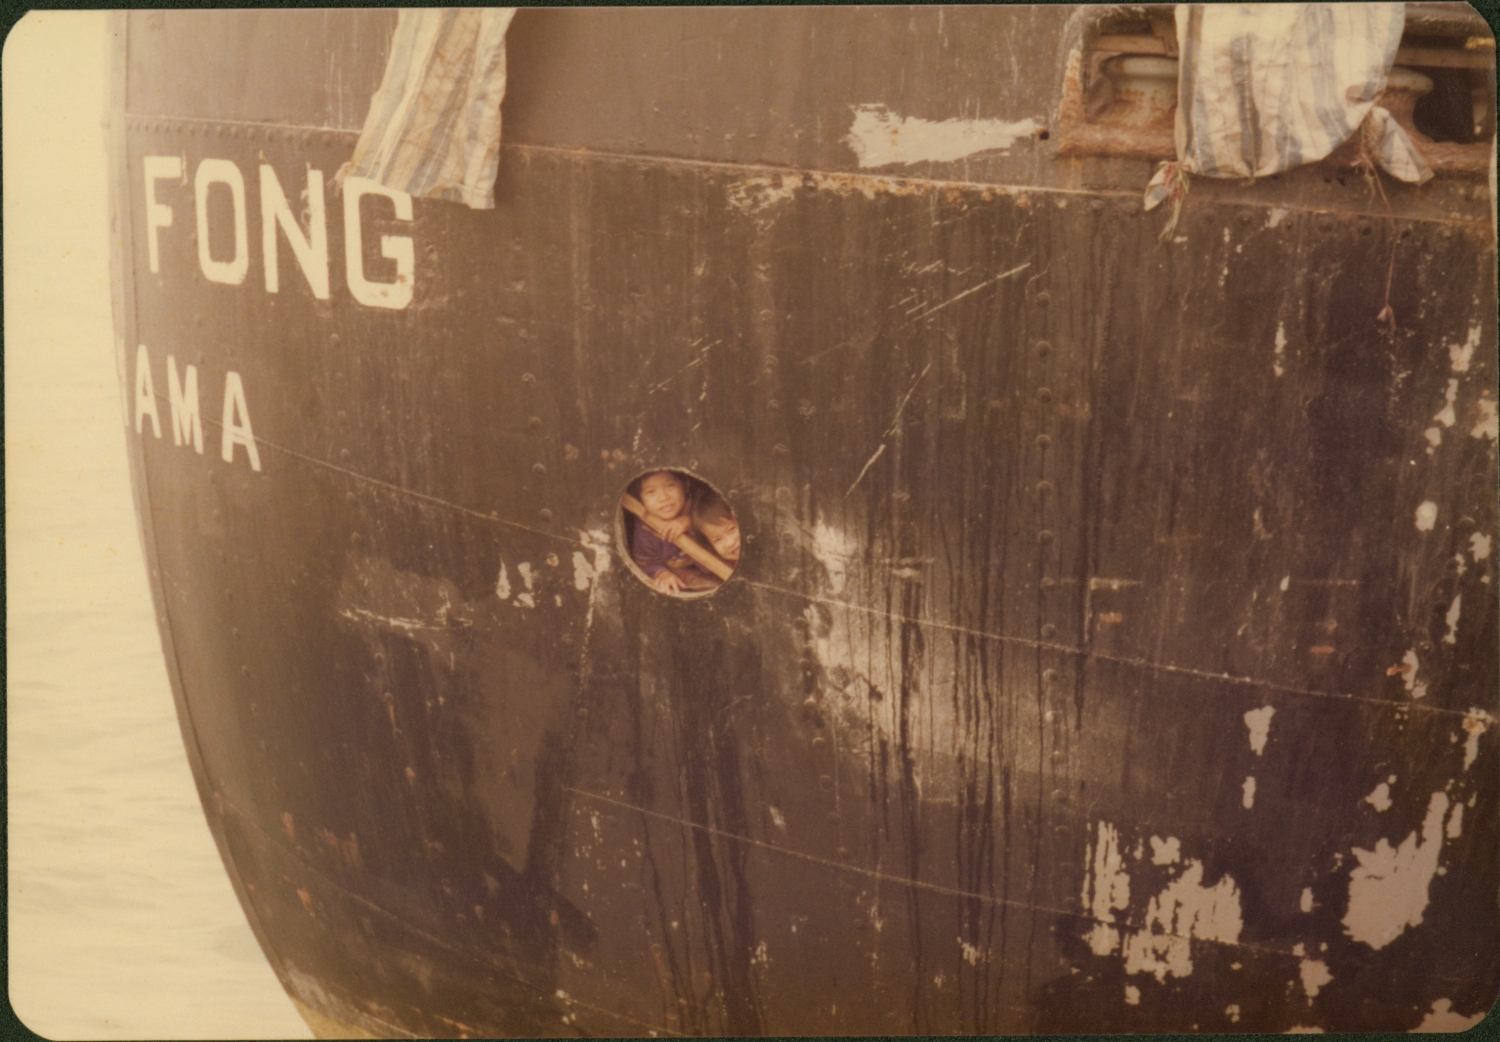 Les Bird, a former member of Marine Police in Hong Kong, will display his private photo collection for the first time in this exhibition. This photo was taken in 1978. Nearly 3,000 Vietnamese refugees arrived in Hong Kong on HUEY FONG. Two little girls peek out from the small porthole.